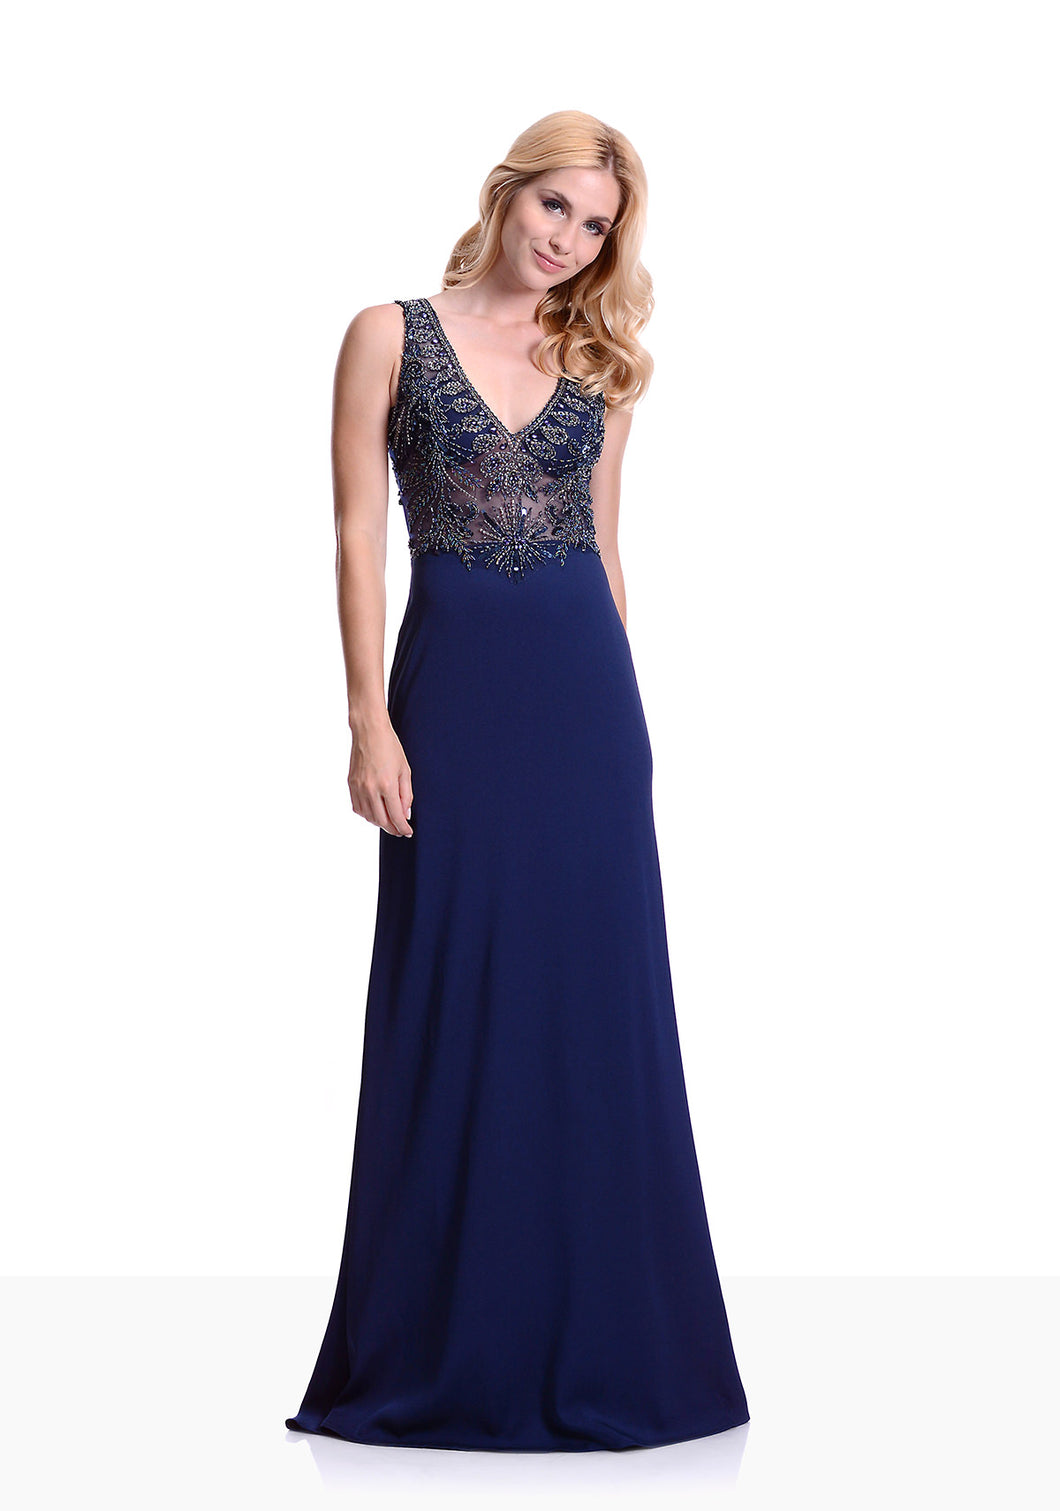 Elegant evening dress with embellished beaded bodice. V neckline design with sheer illusion bodice. Super pretty Navy fitted evening and prom dress.